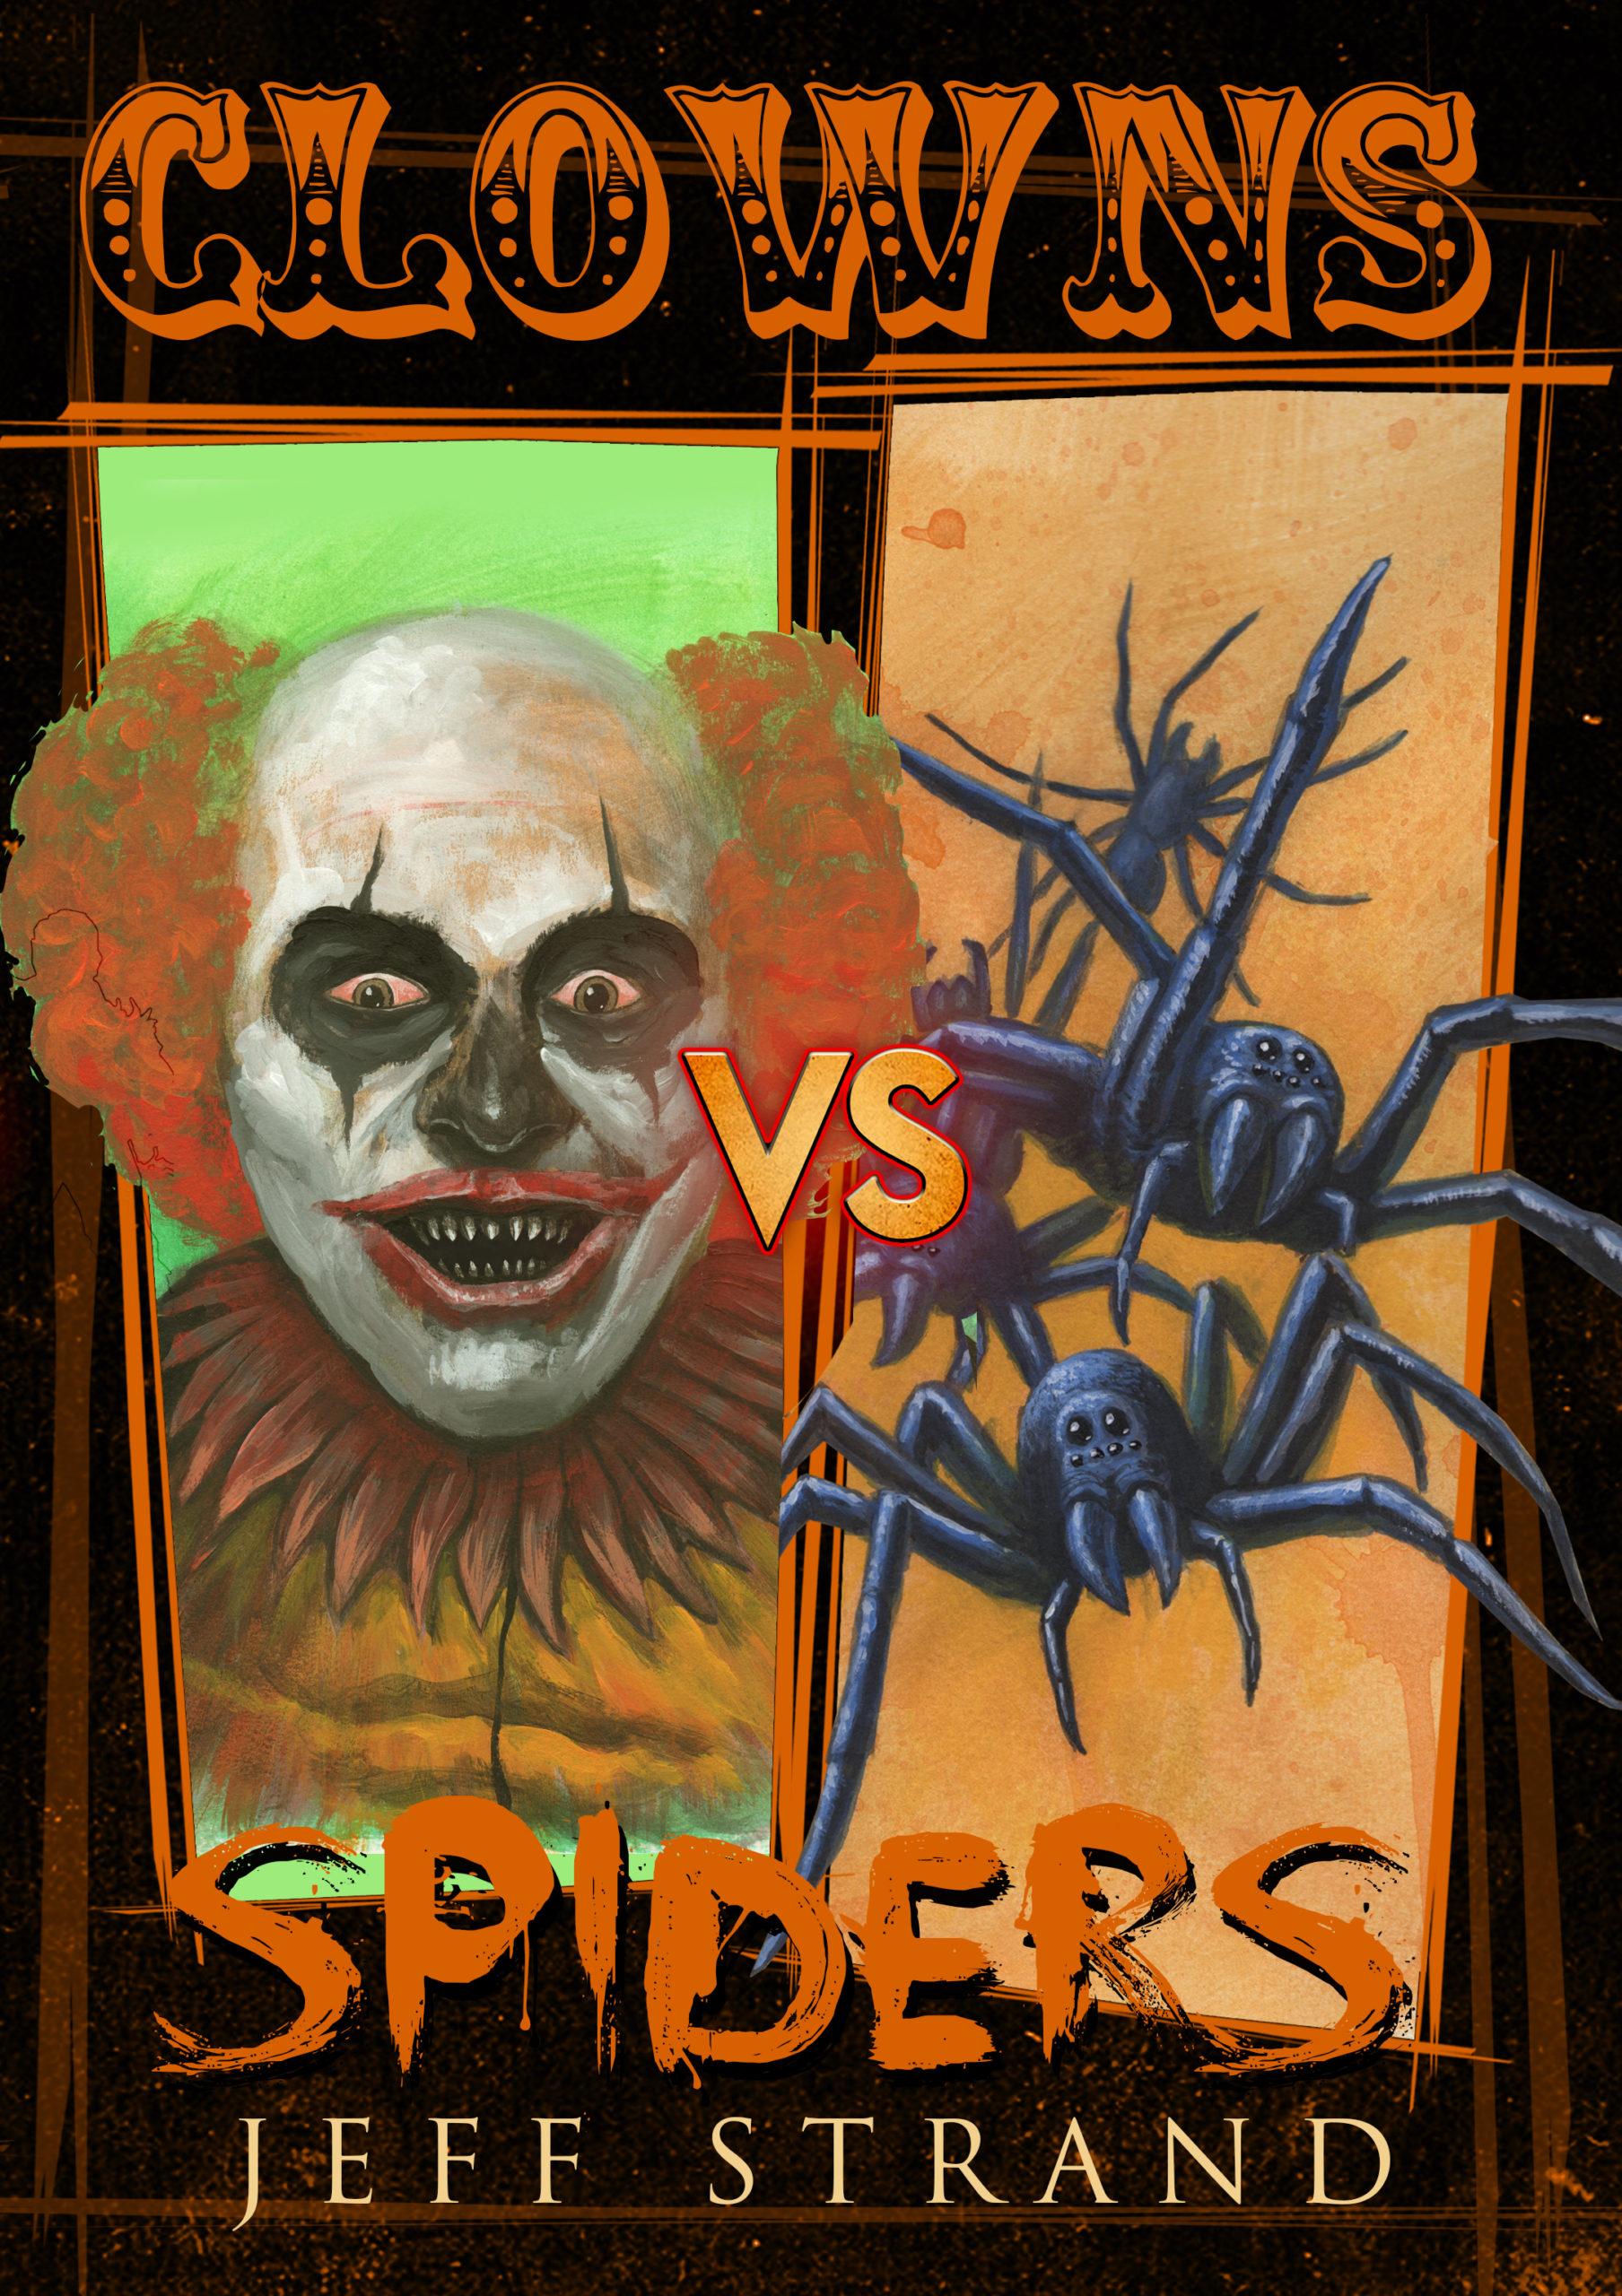 Clowns VS Spiders